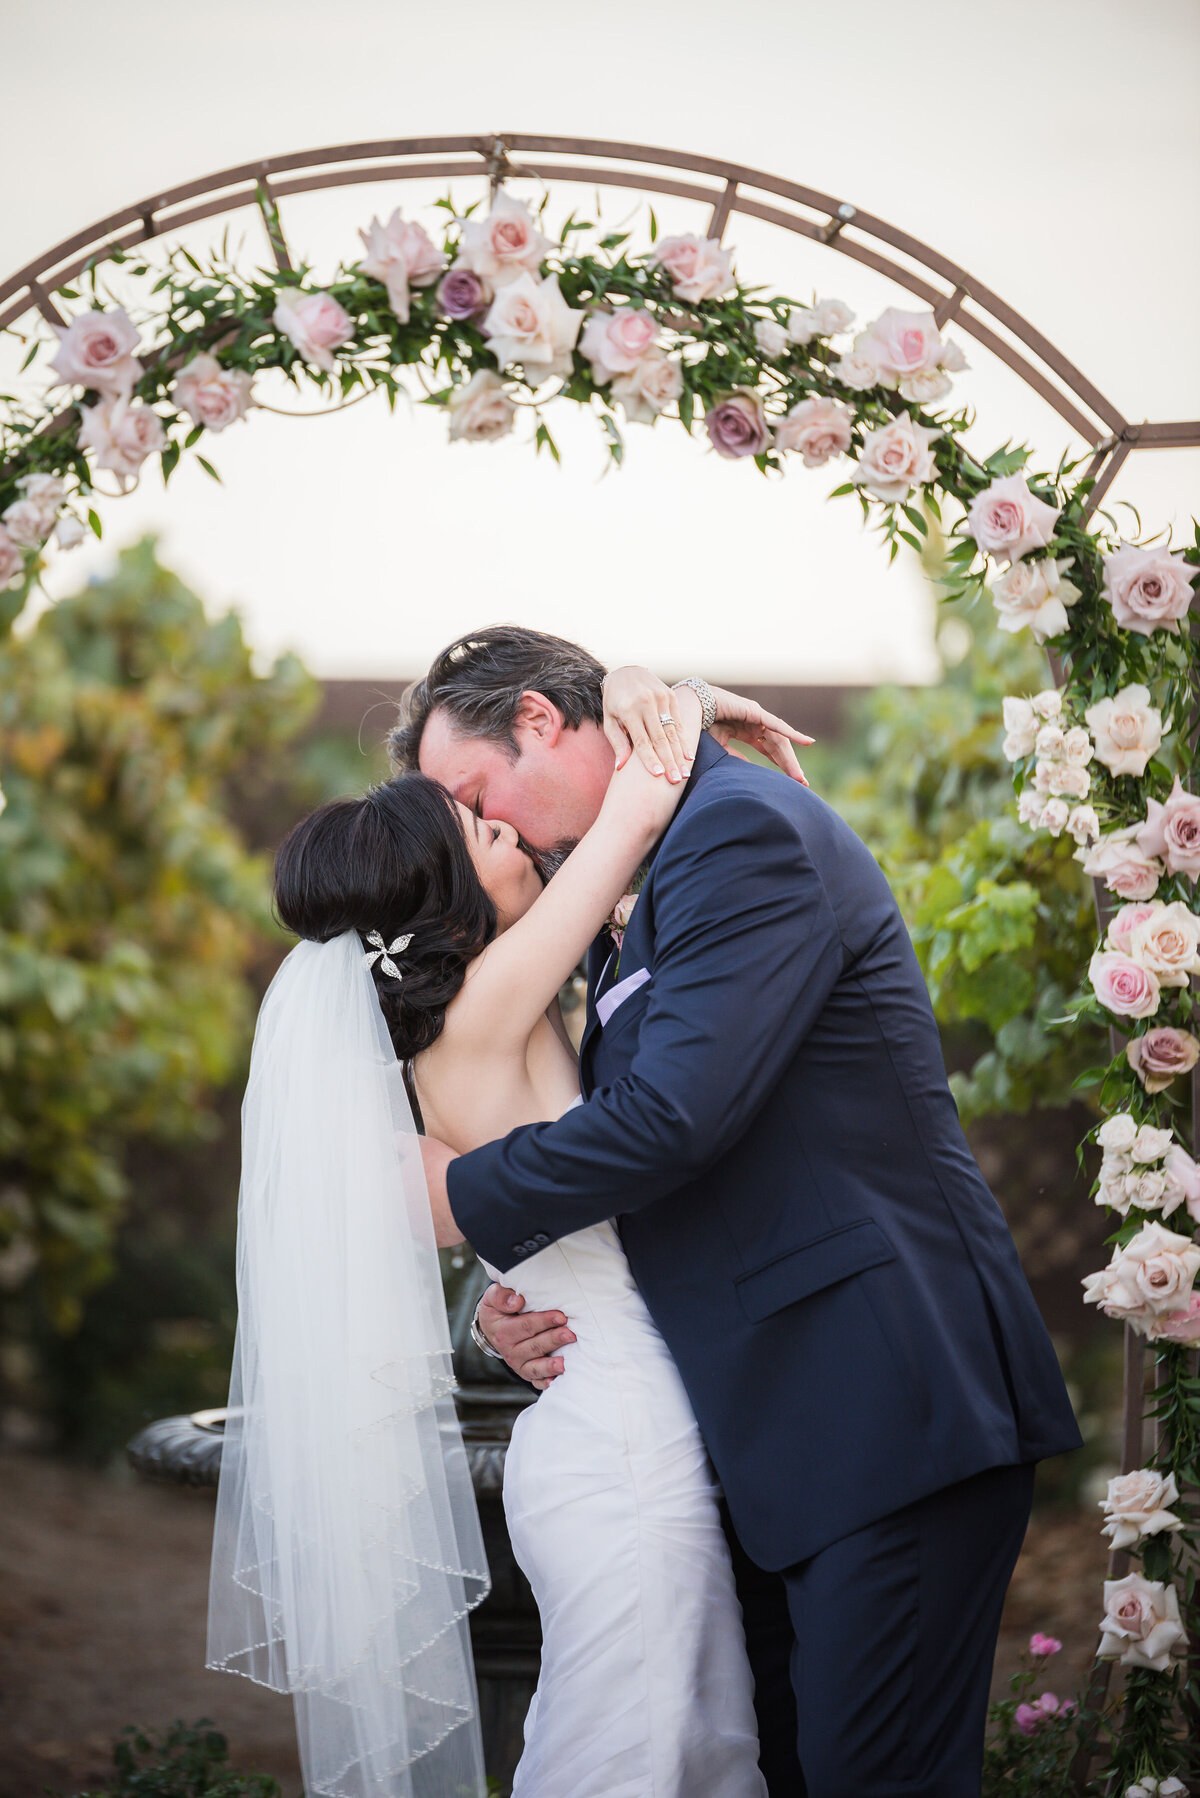 pink rose arch with bride and groom